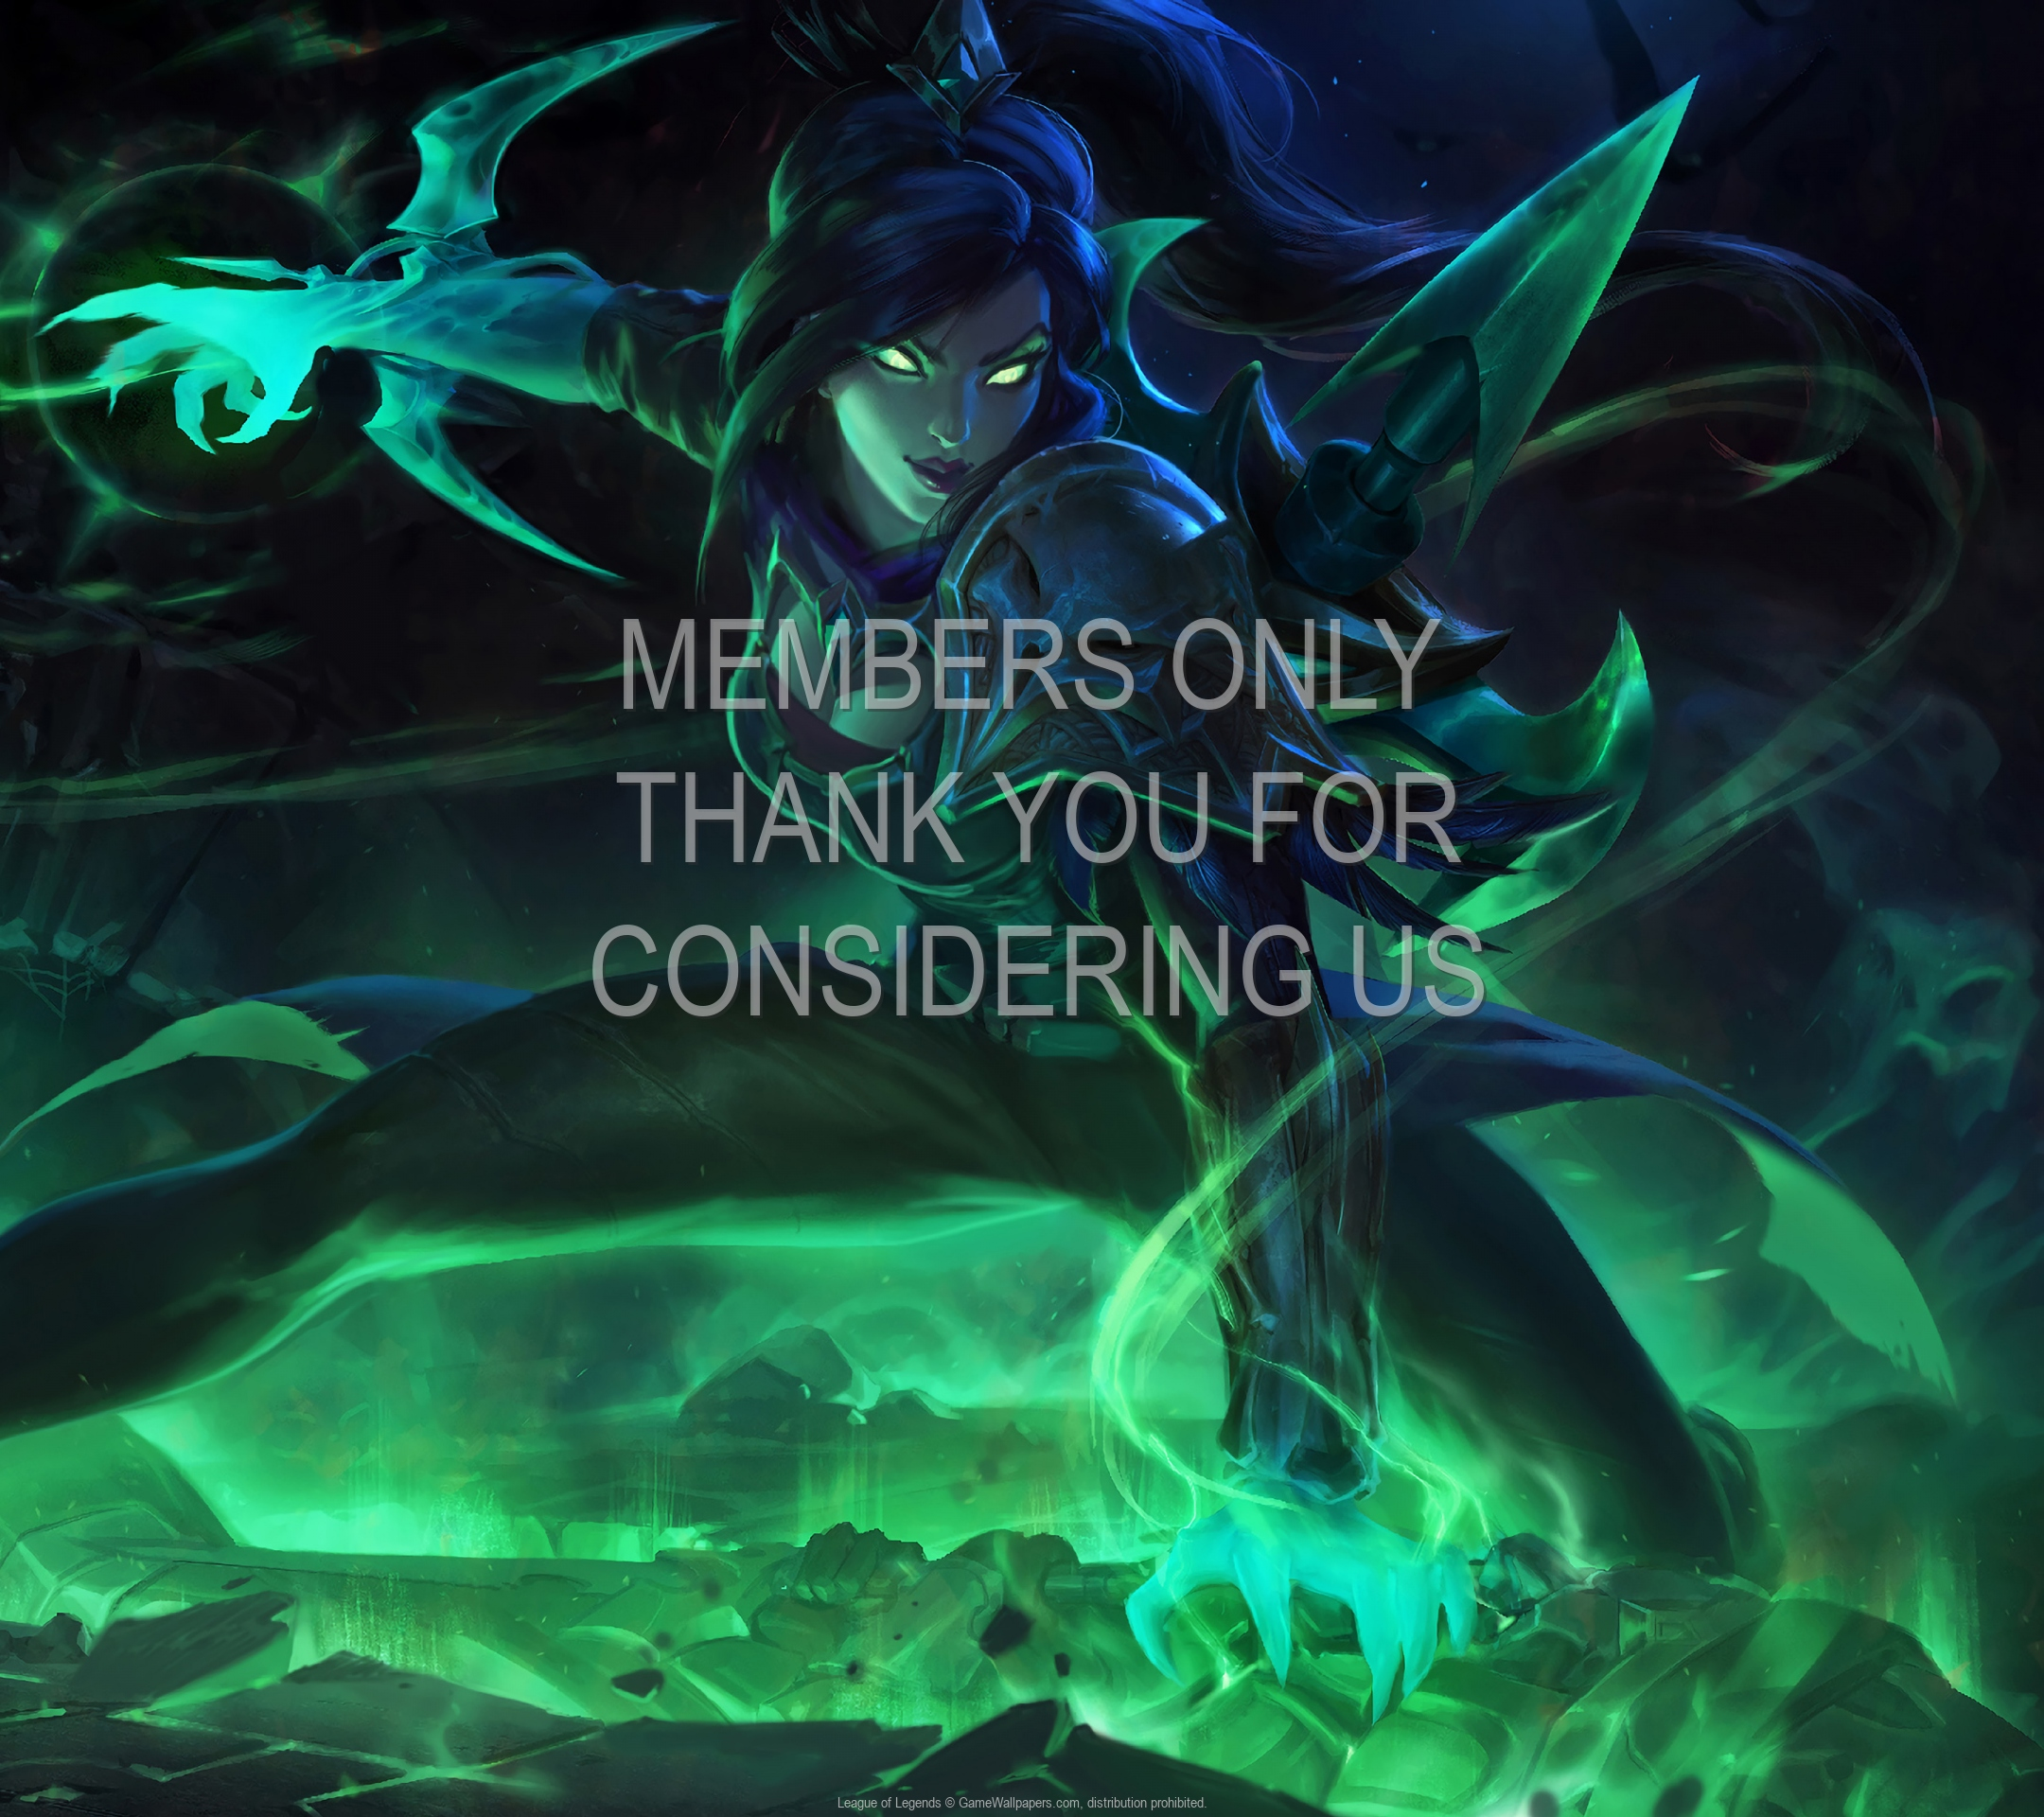 League of Legends 1920x1080 Mobile wallpaper or background 67